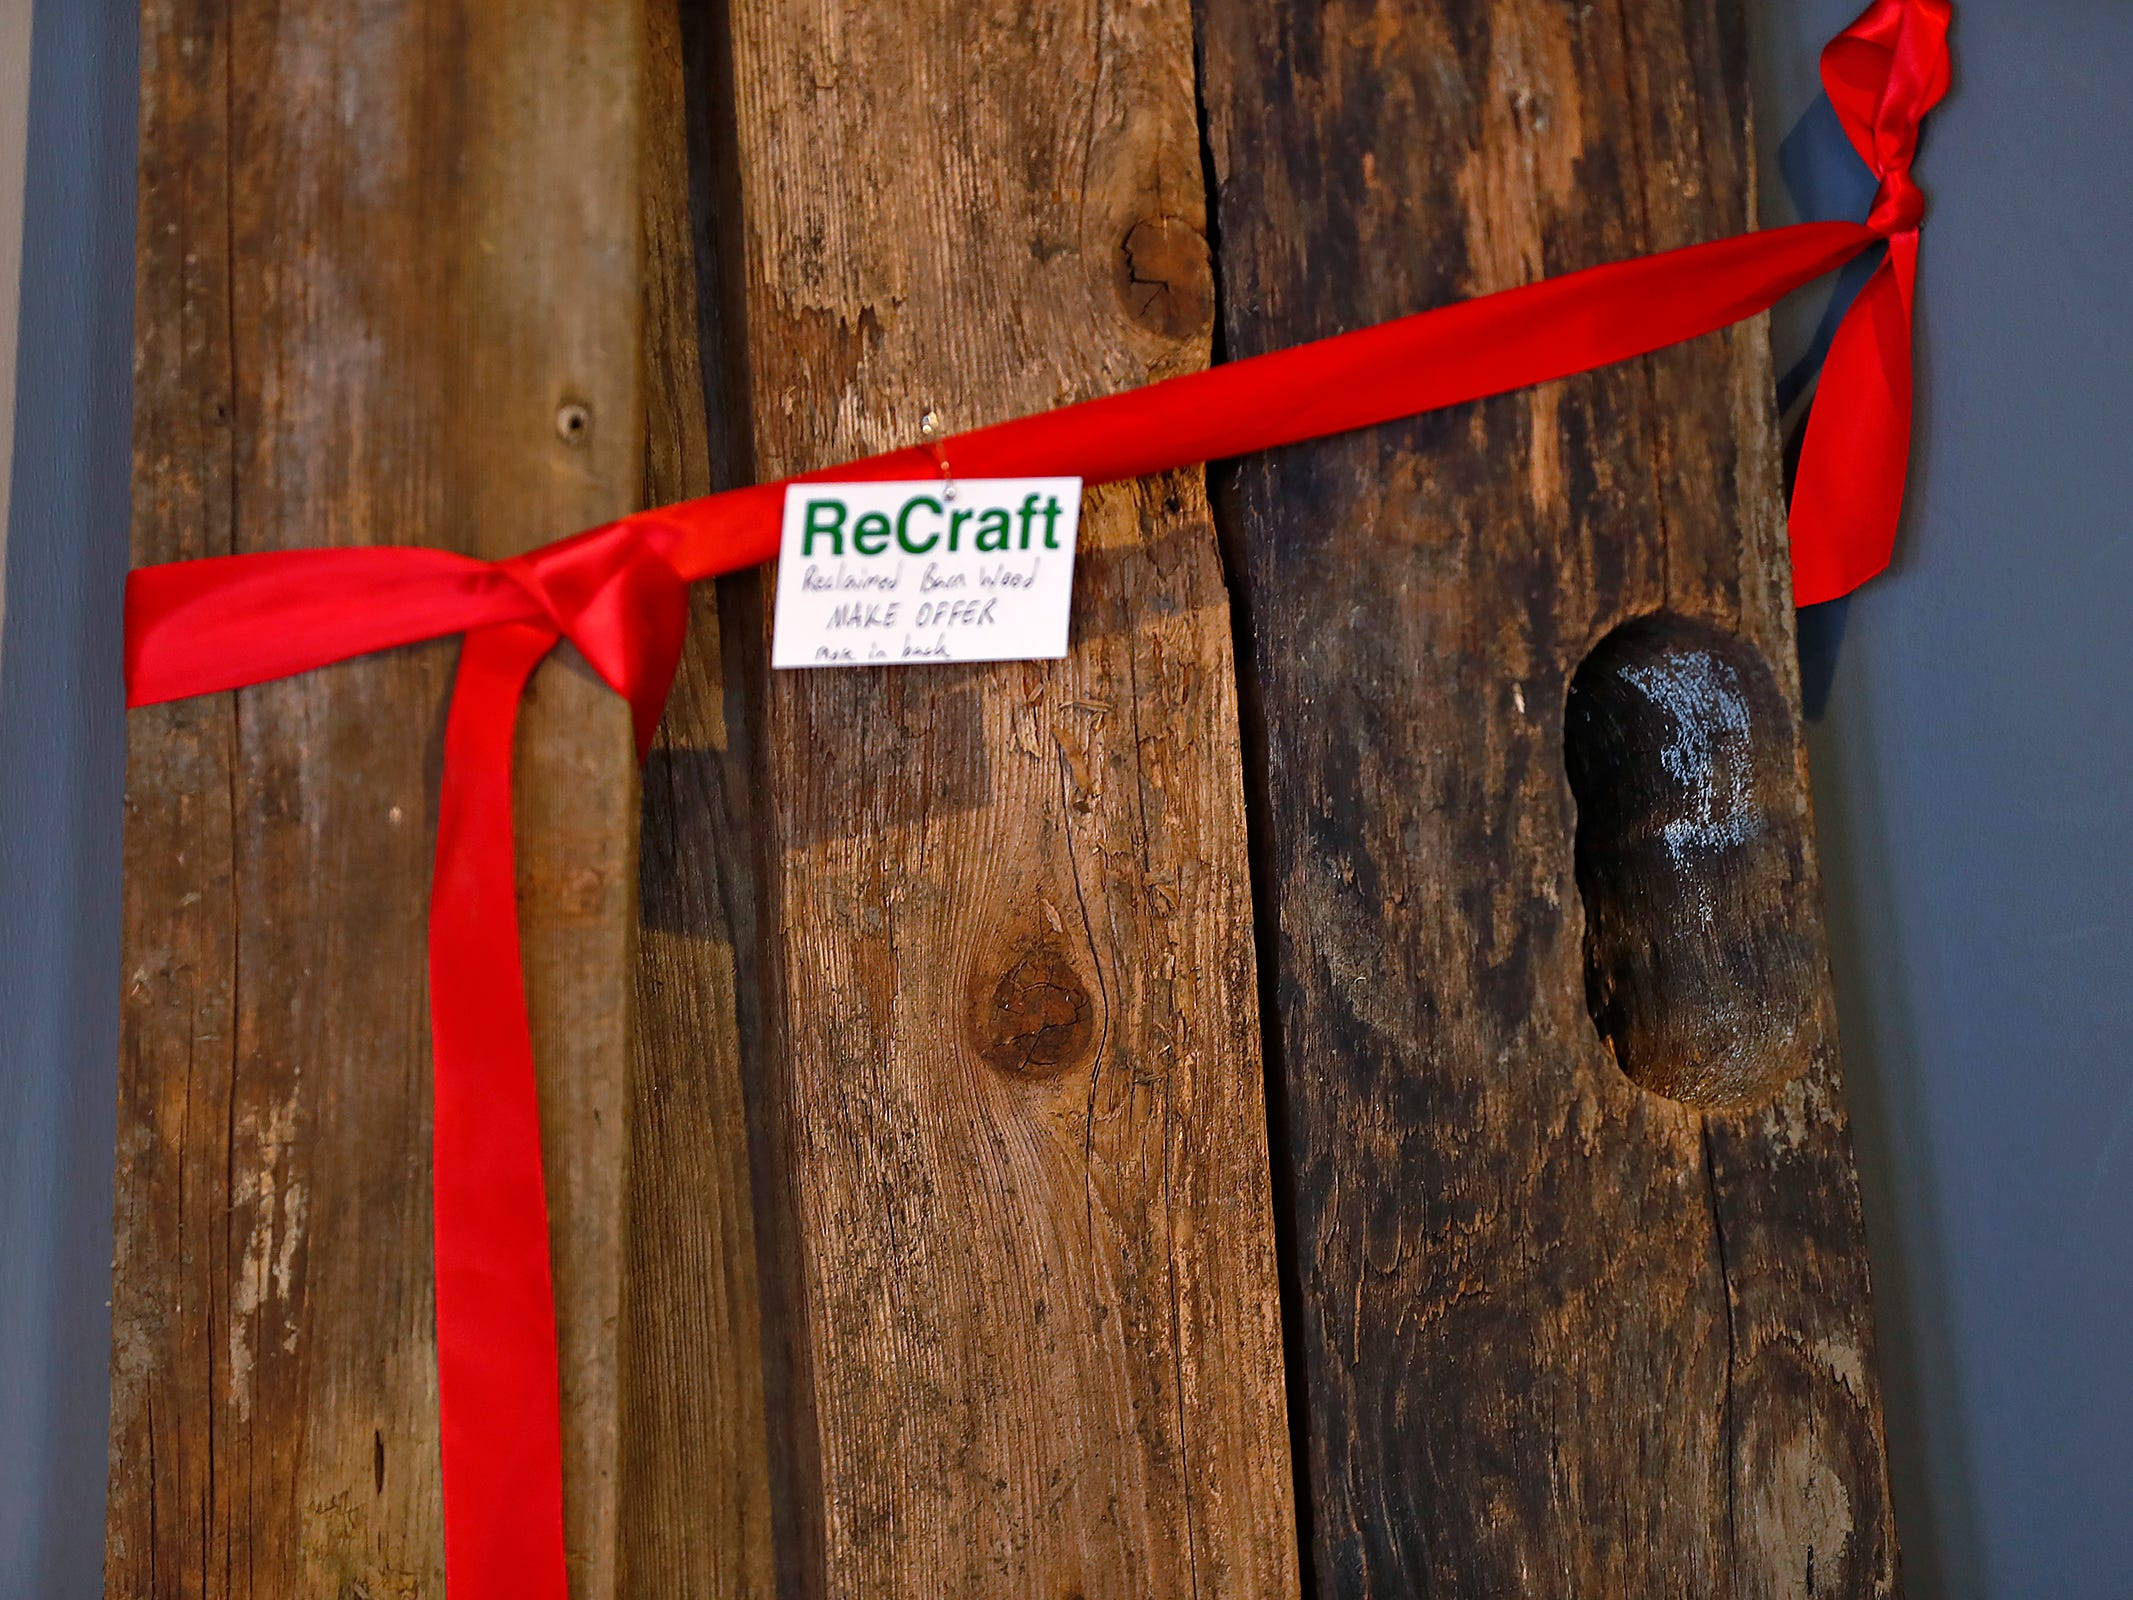 Reclaimed barn wood is seen for sale at ReCraft, Tuesday, Dec. 11, 2018.  Many of the store's items are donated or ready for re-use. ReCraft was born out of Bethany Daugherty's love of crafting and her interest in environmental activism.  At the secondhand craft and hobby store, Daugherty also teaches workshops.  Sustainability and environmentalism are the focus of the store.